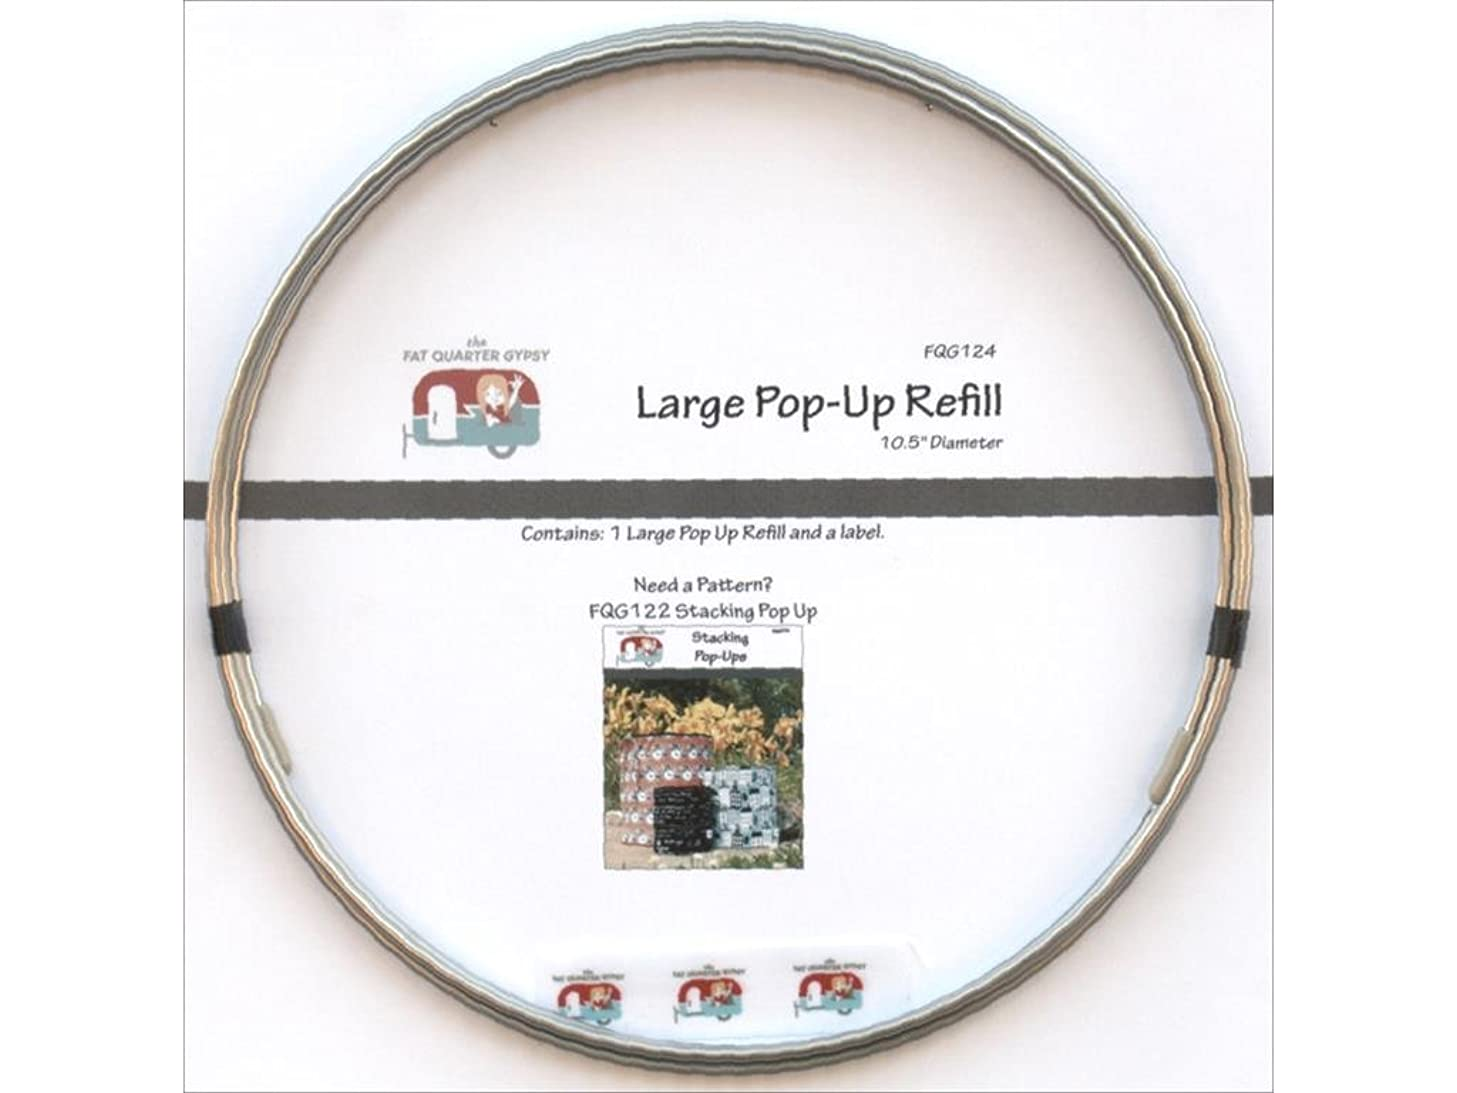 The Fat Quarter Gypsy The Refill Large Pop-Up Rfl Lg 10.5